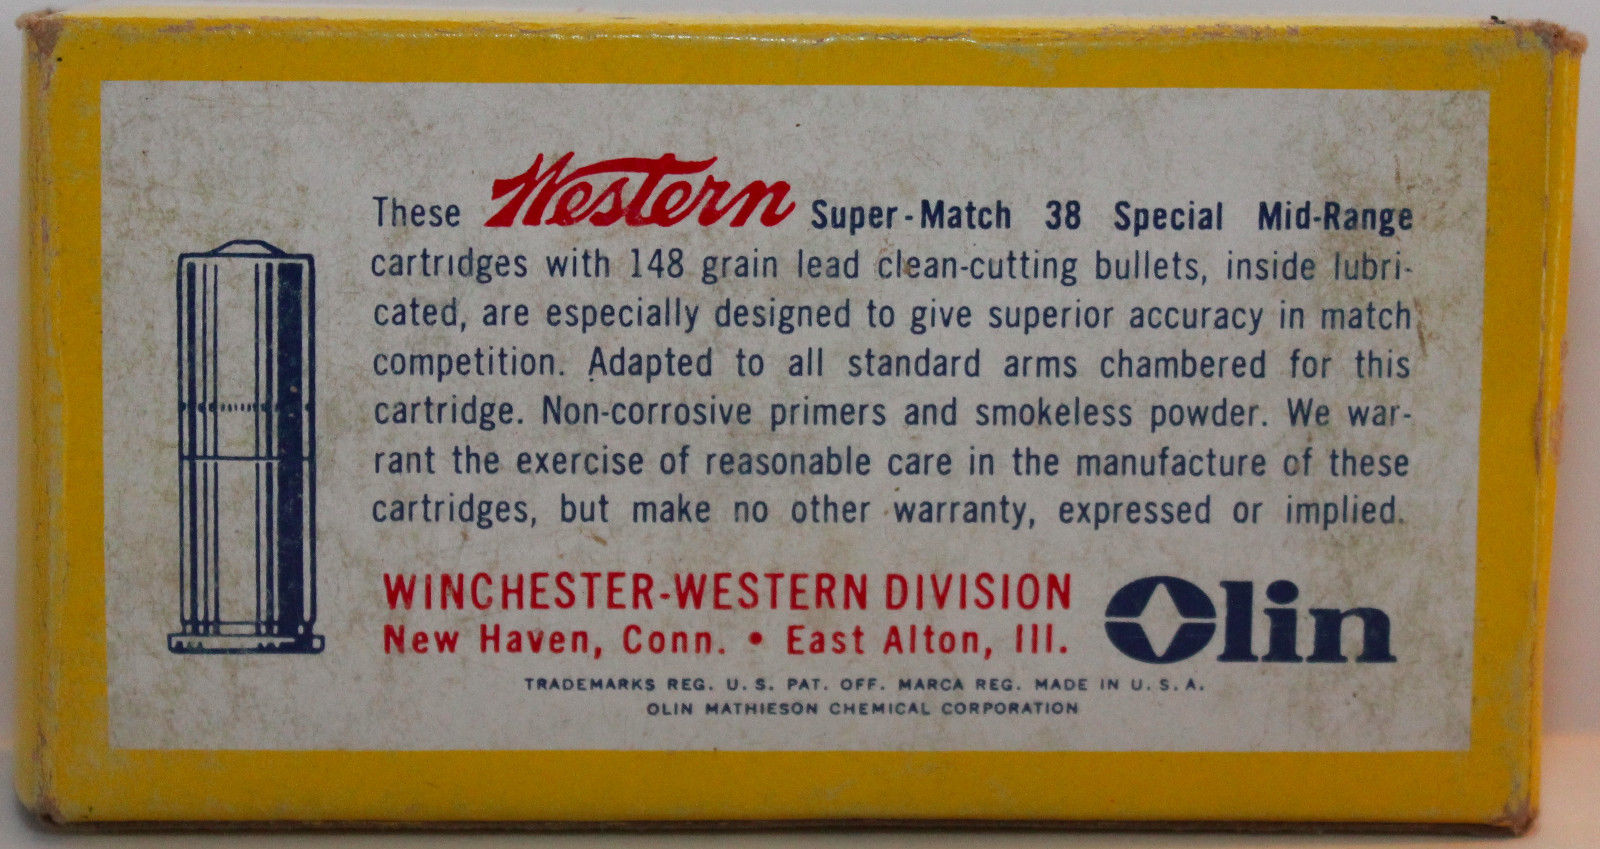 Vintage Winchester Western .38 Special Mid-Range wadcutter target ammunition. Listed velocity was 770fps with a 148 grain hollow base wadcutter lead bullet. (Picture courtesy eBay).